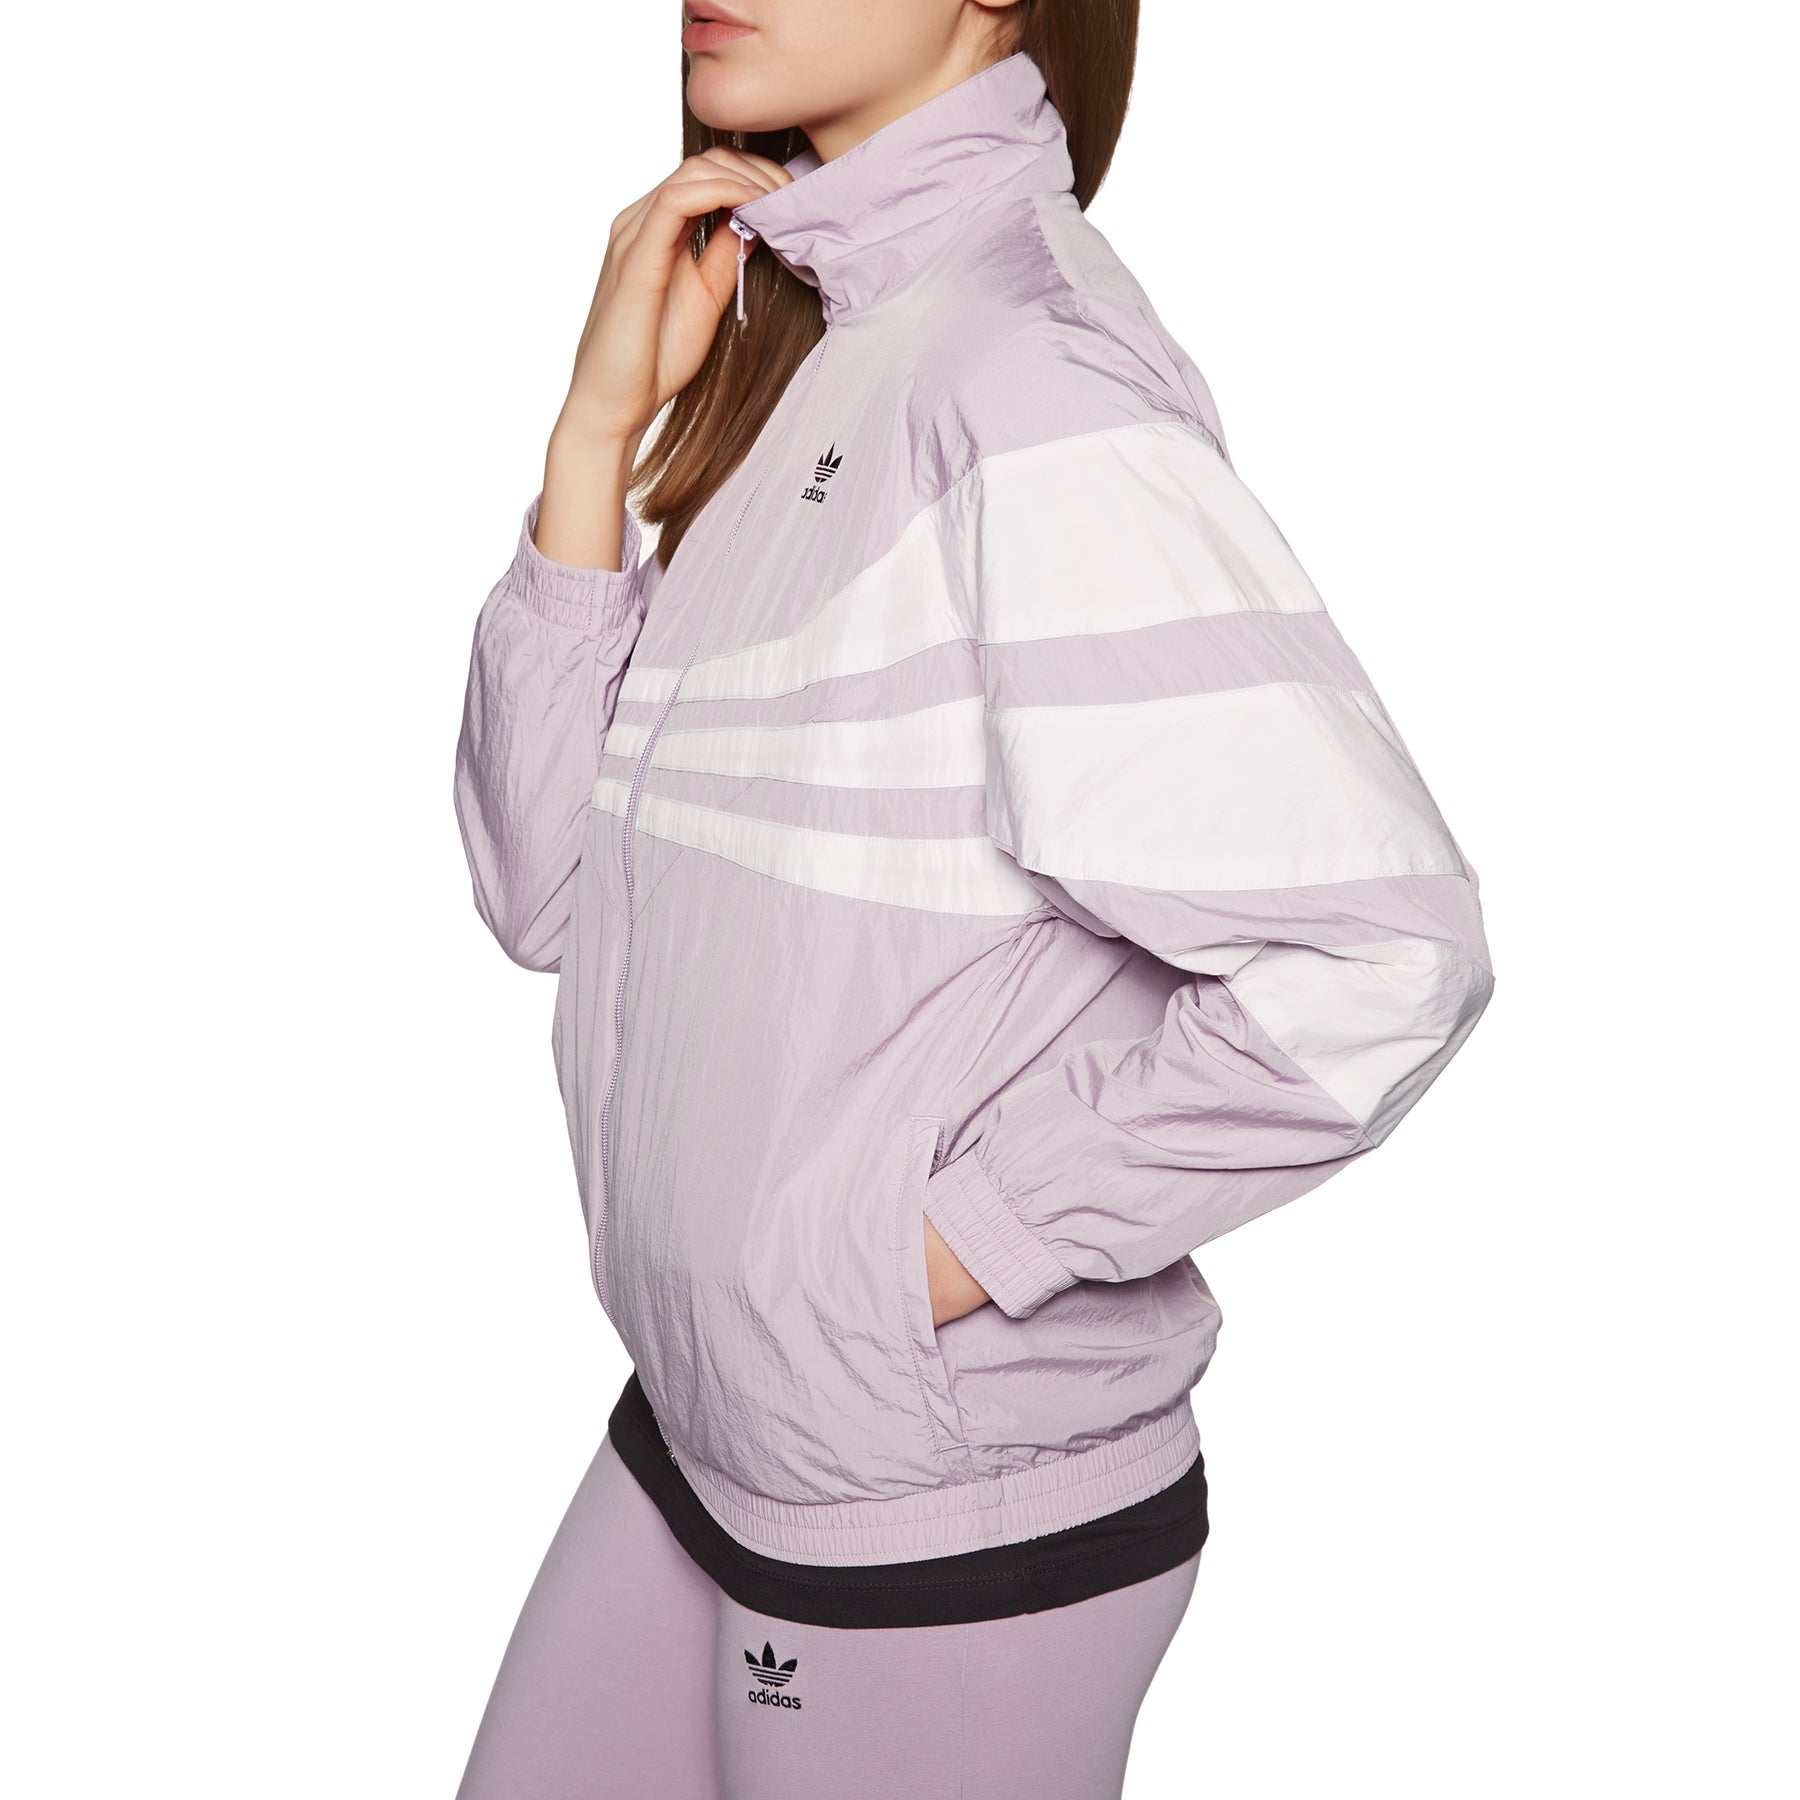 Adidas Originals Track Top Womens Jacket available from Surfdome